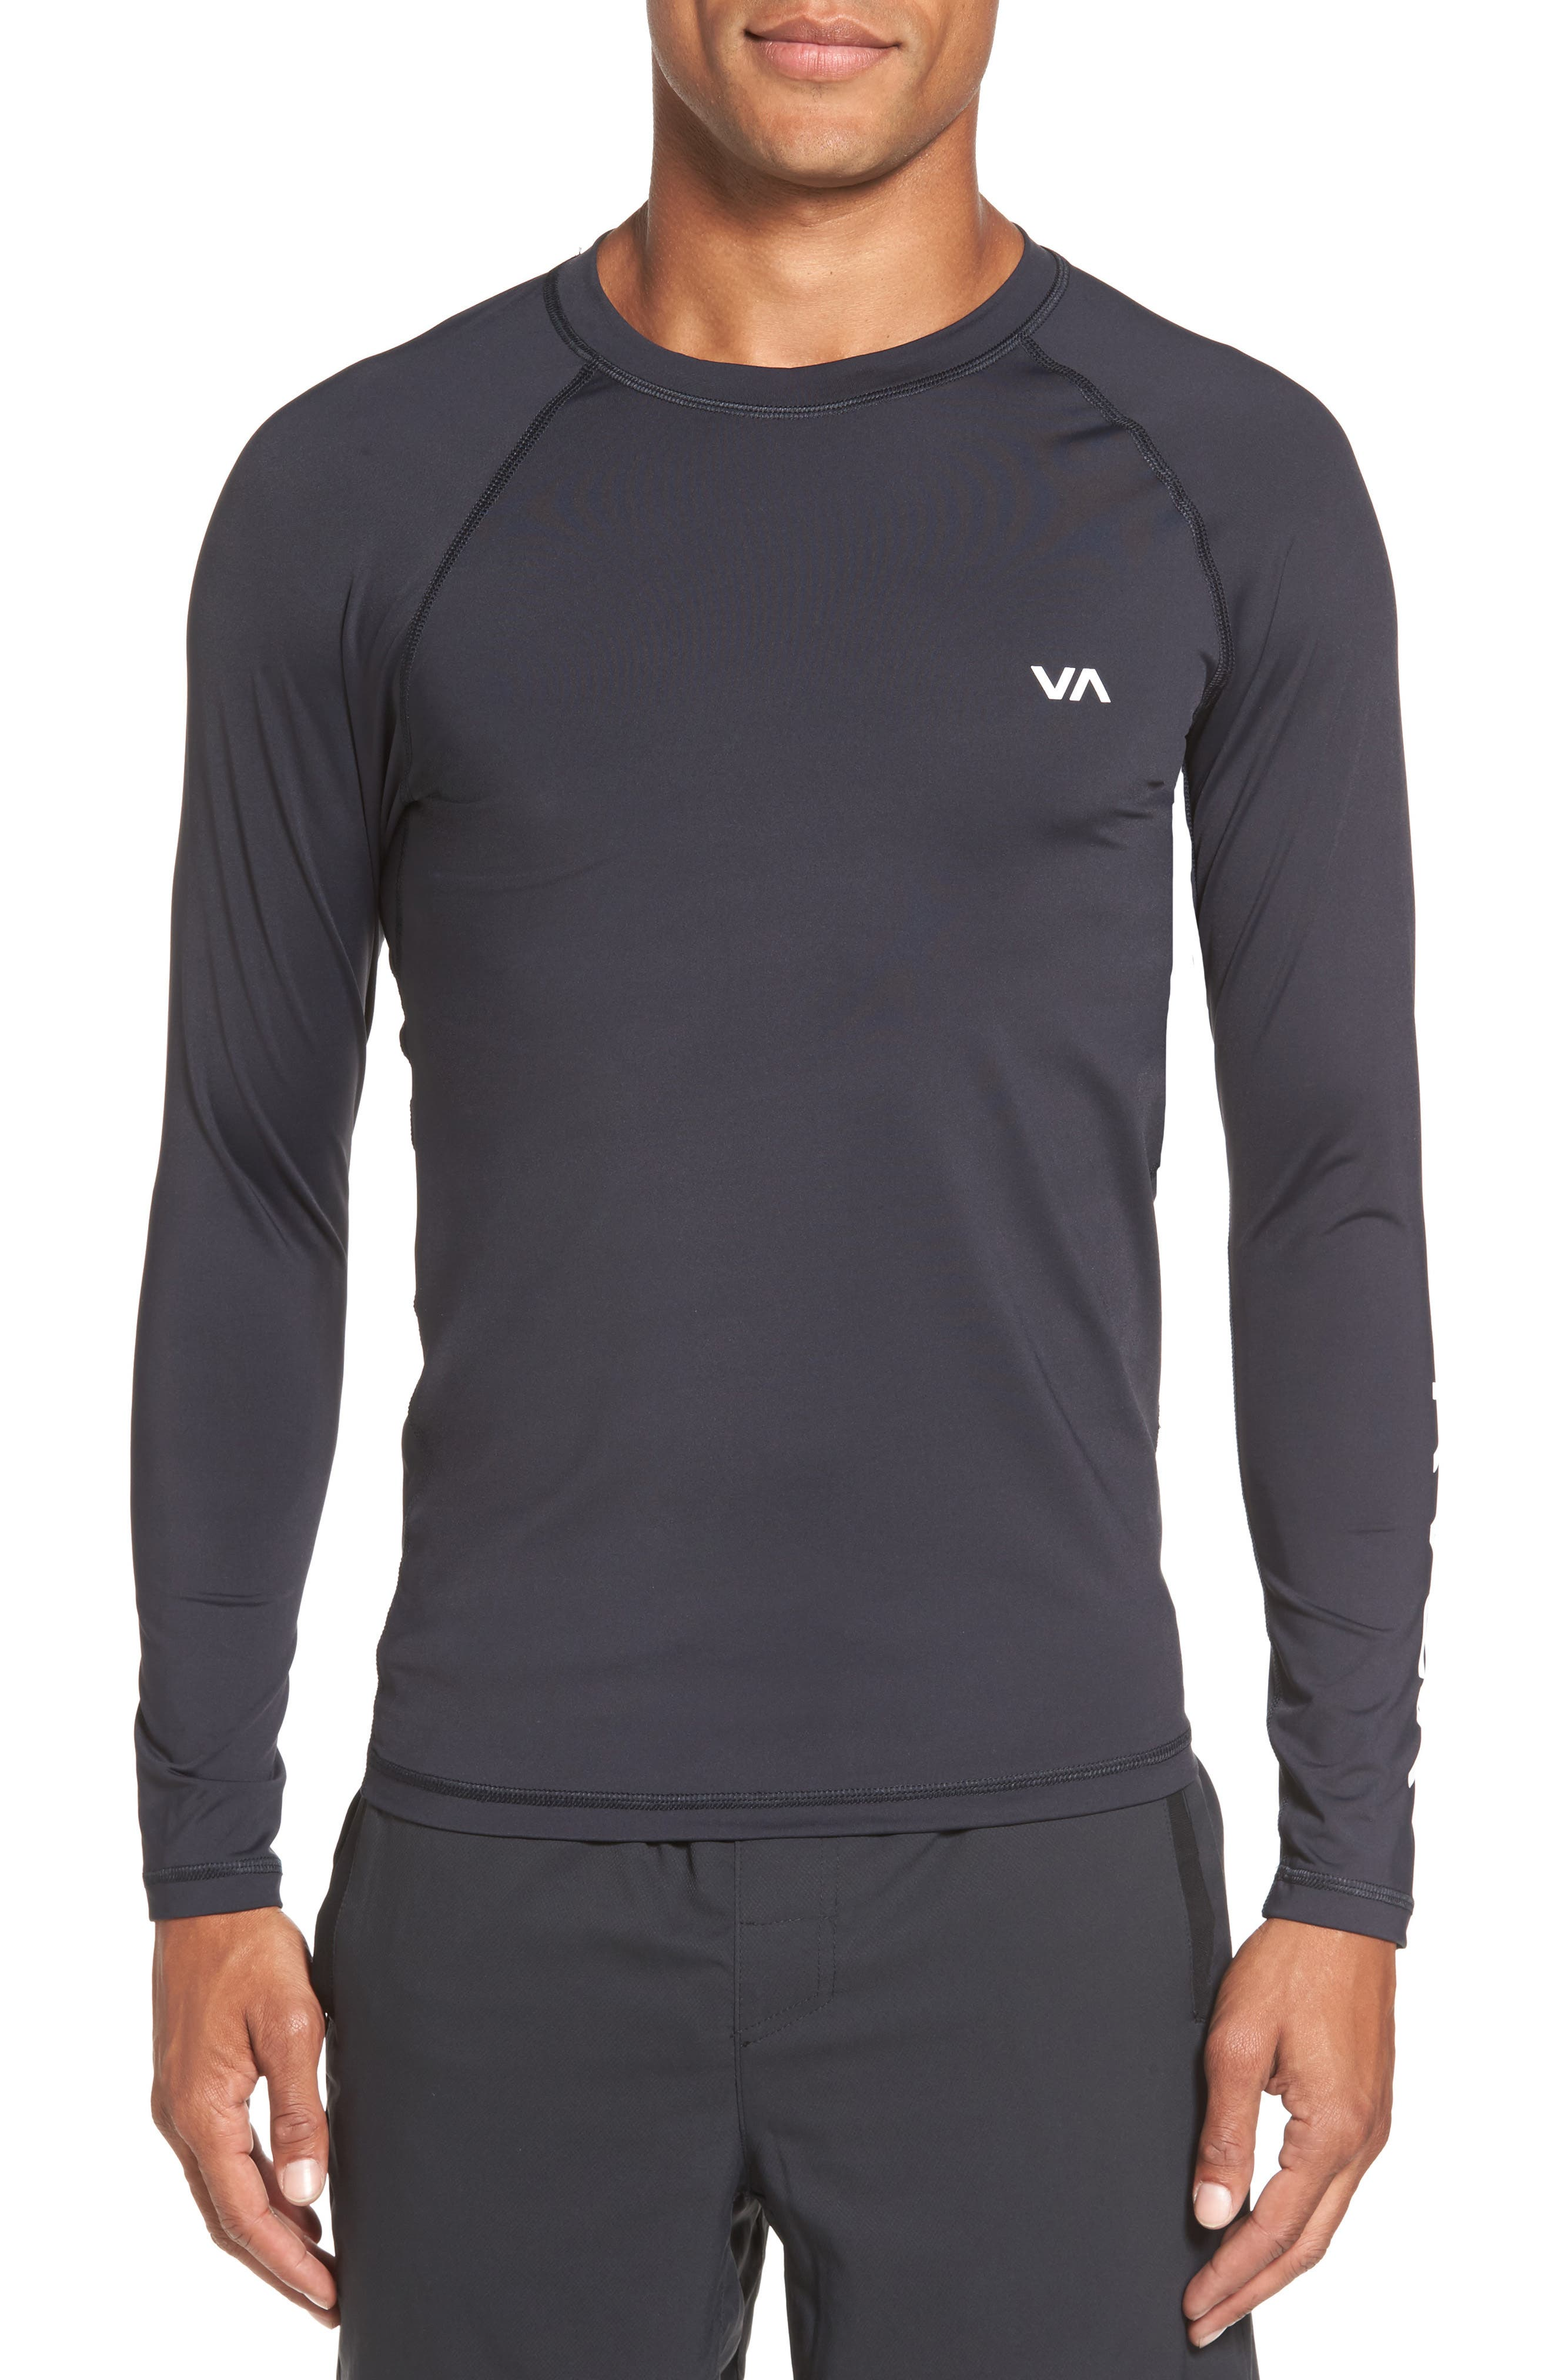 Main Image - RVCA VA Sport Compression Shirt